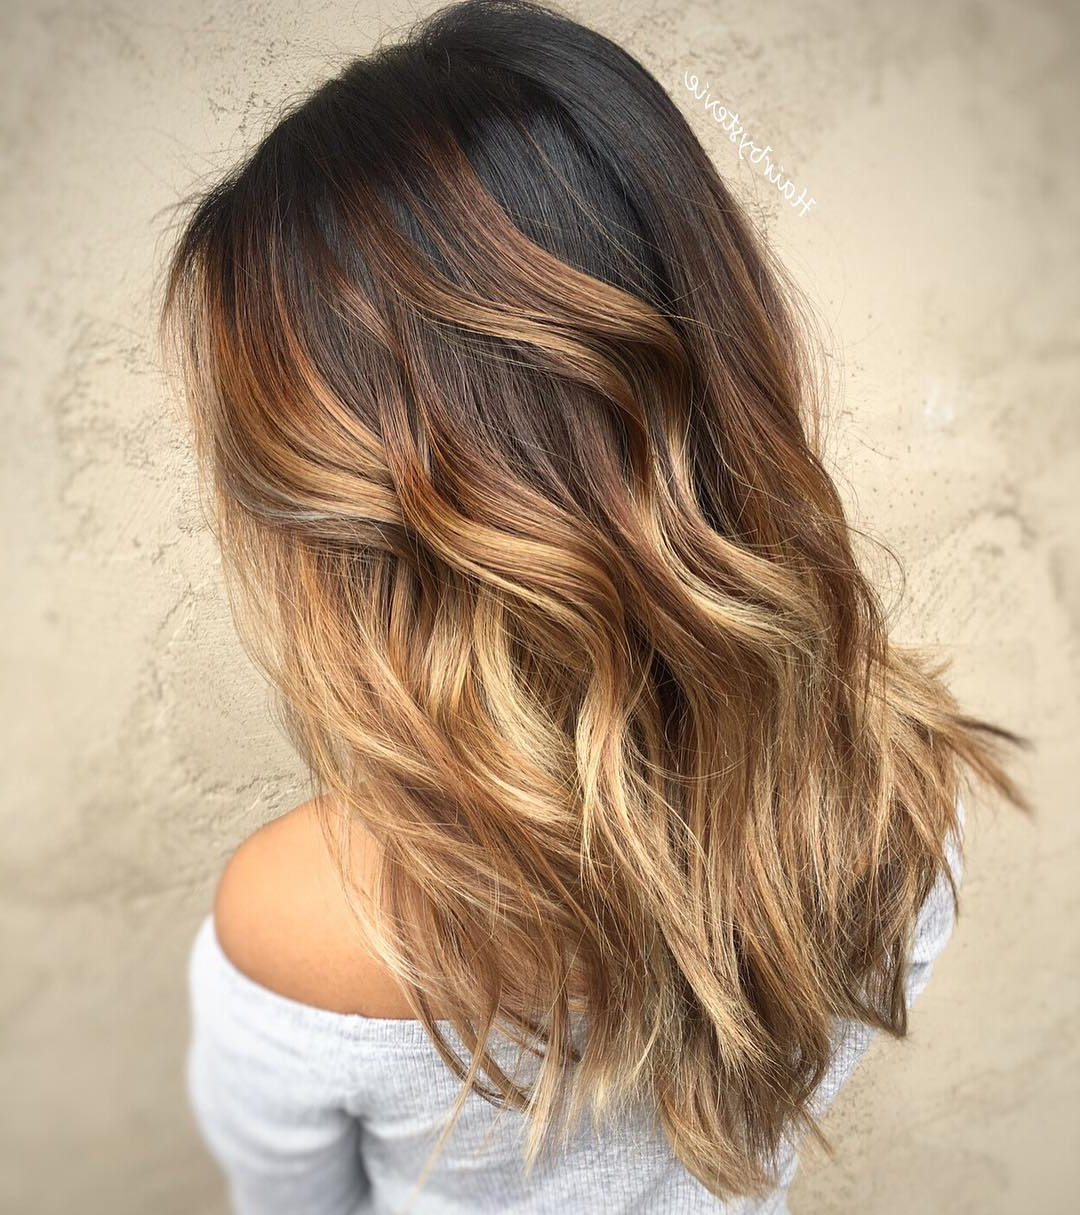 20 Sweet Caramel Balayage Hairstyles For Brunettes And Beyond Intended For Well Liked Curly Golden Brown Balayage Long Hairstyles (View 3 of 20)